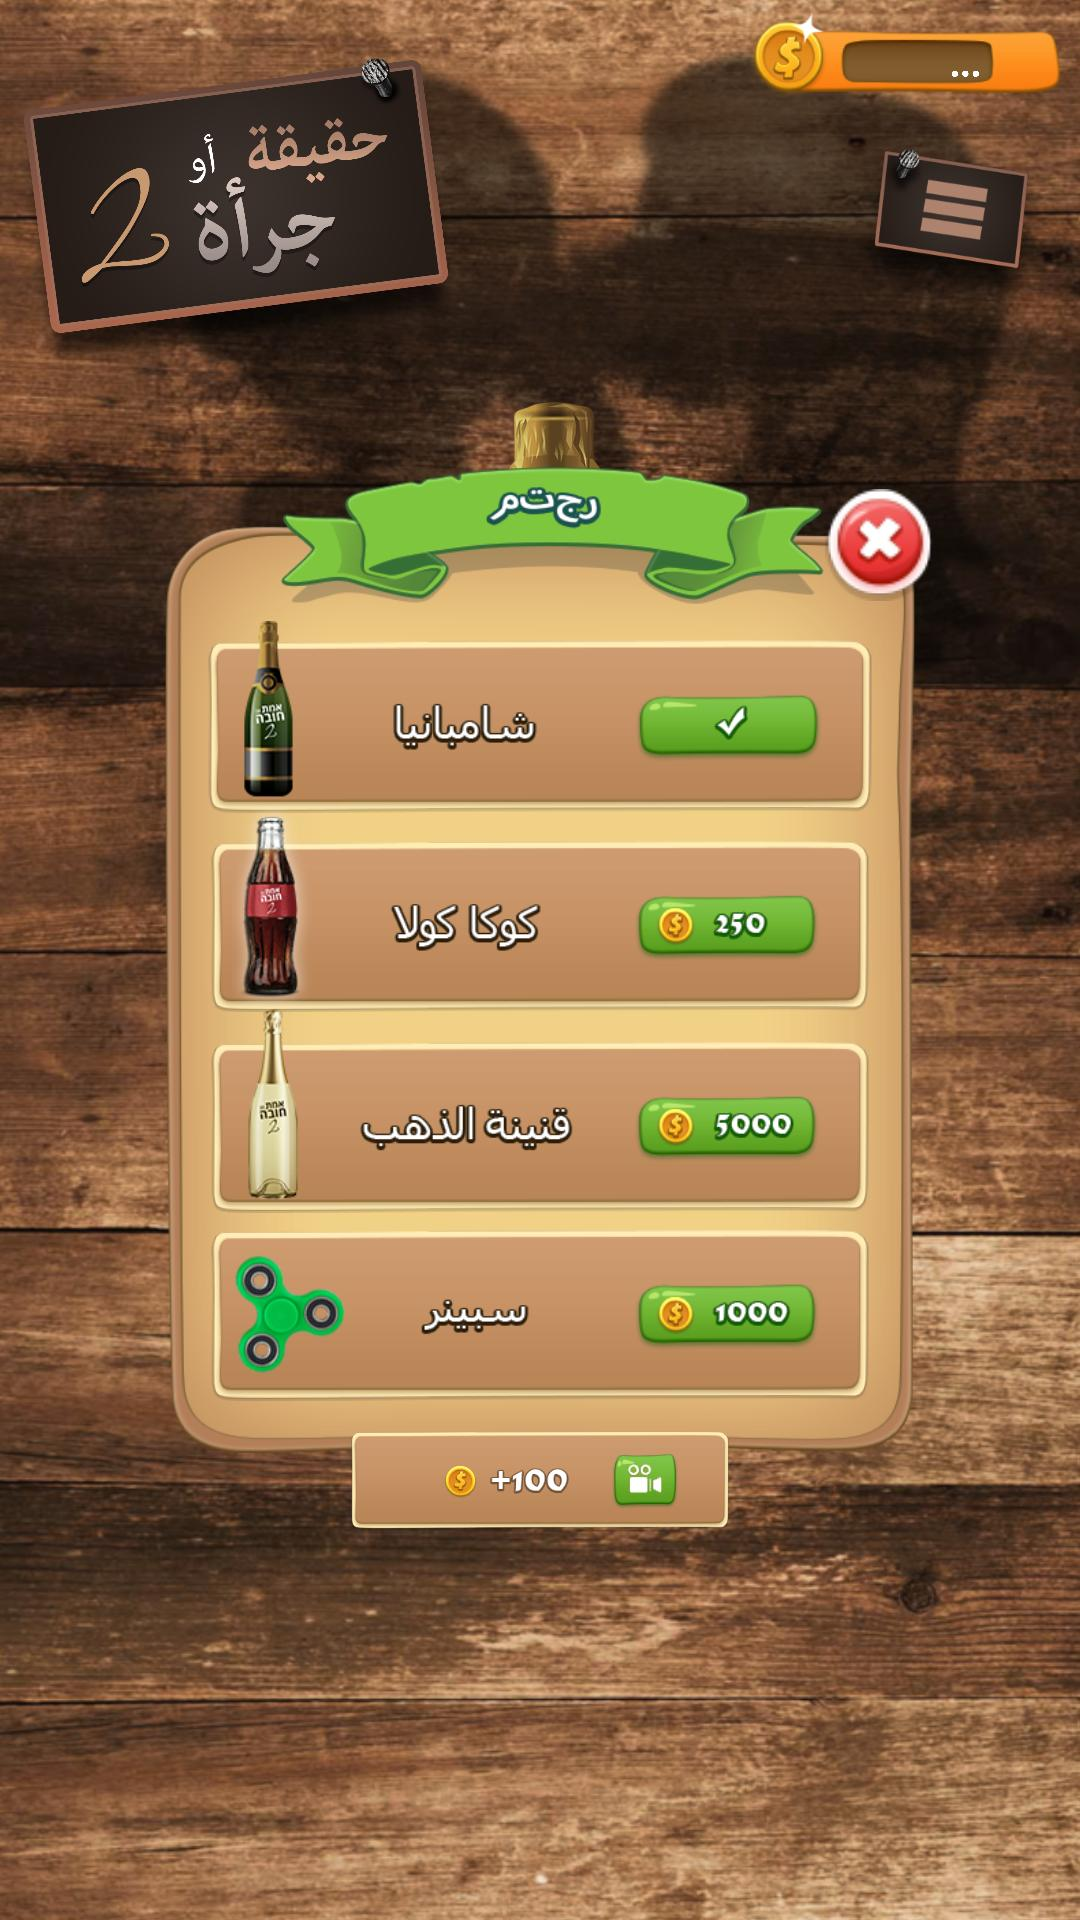 Truth or Dare 2 (Arabic) for Android - APK Download